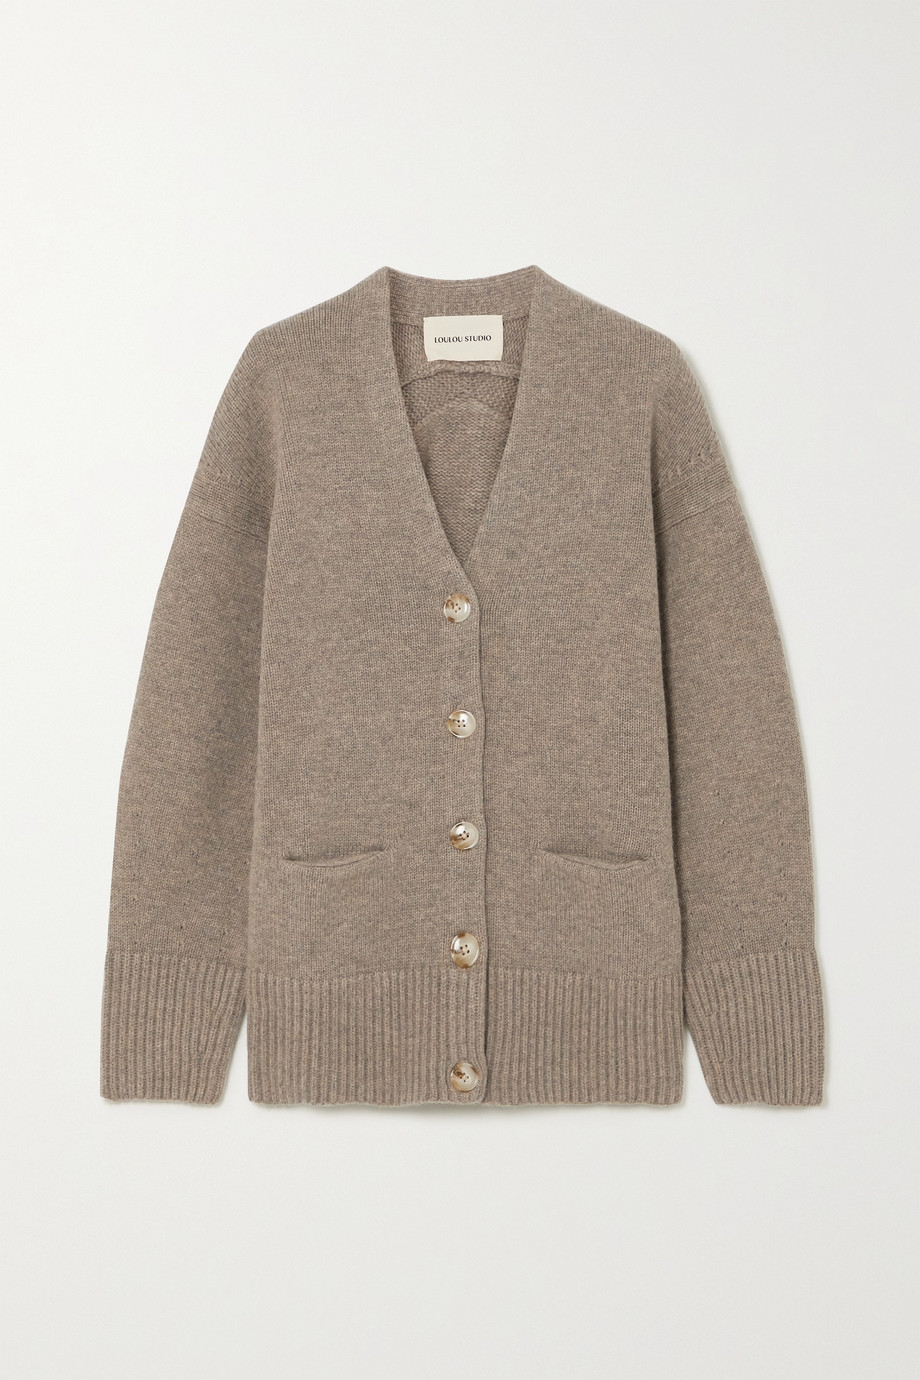 LOULOU STUDIO Sri mélange wool and cashmere-blend cardigan